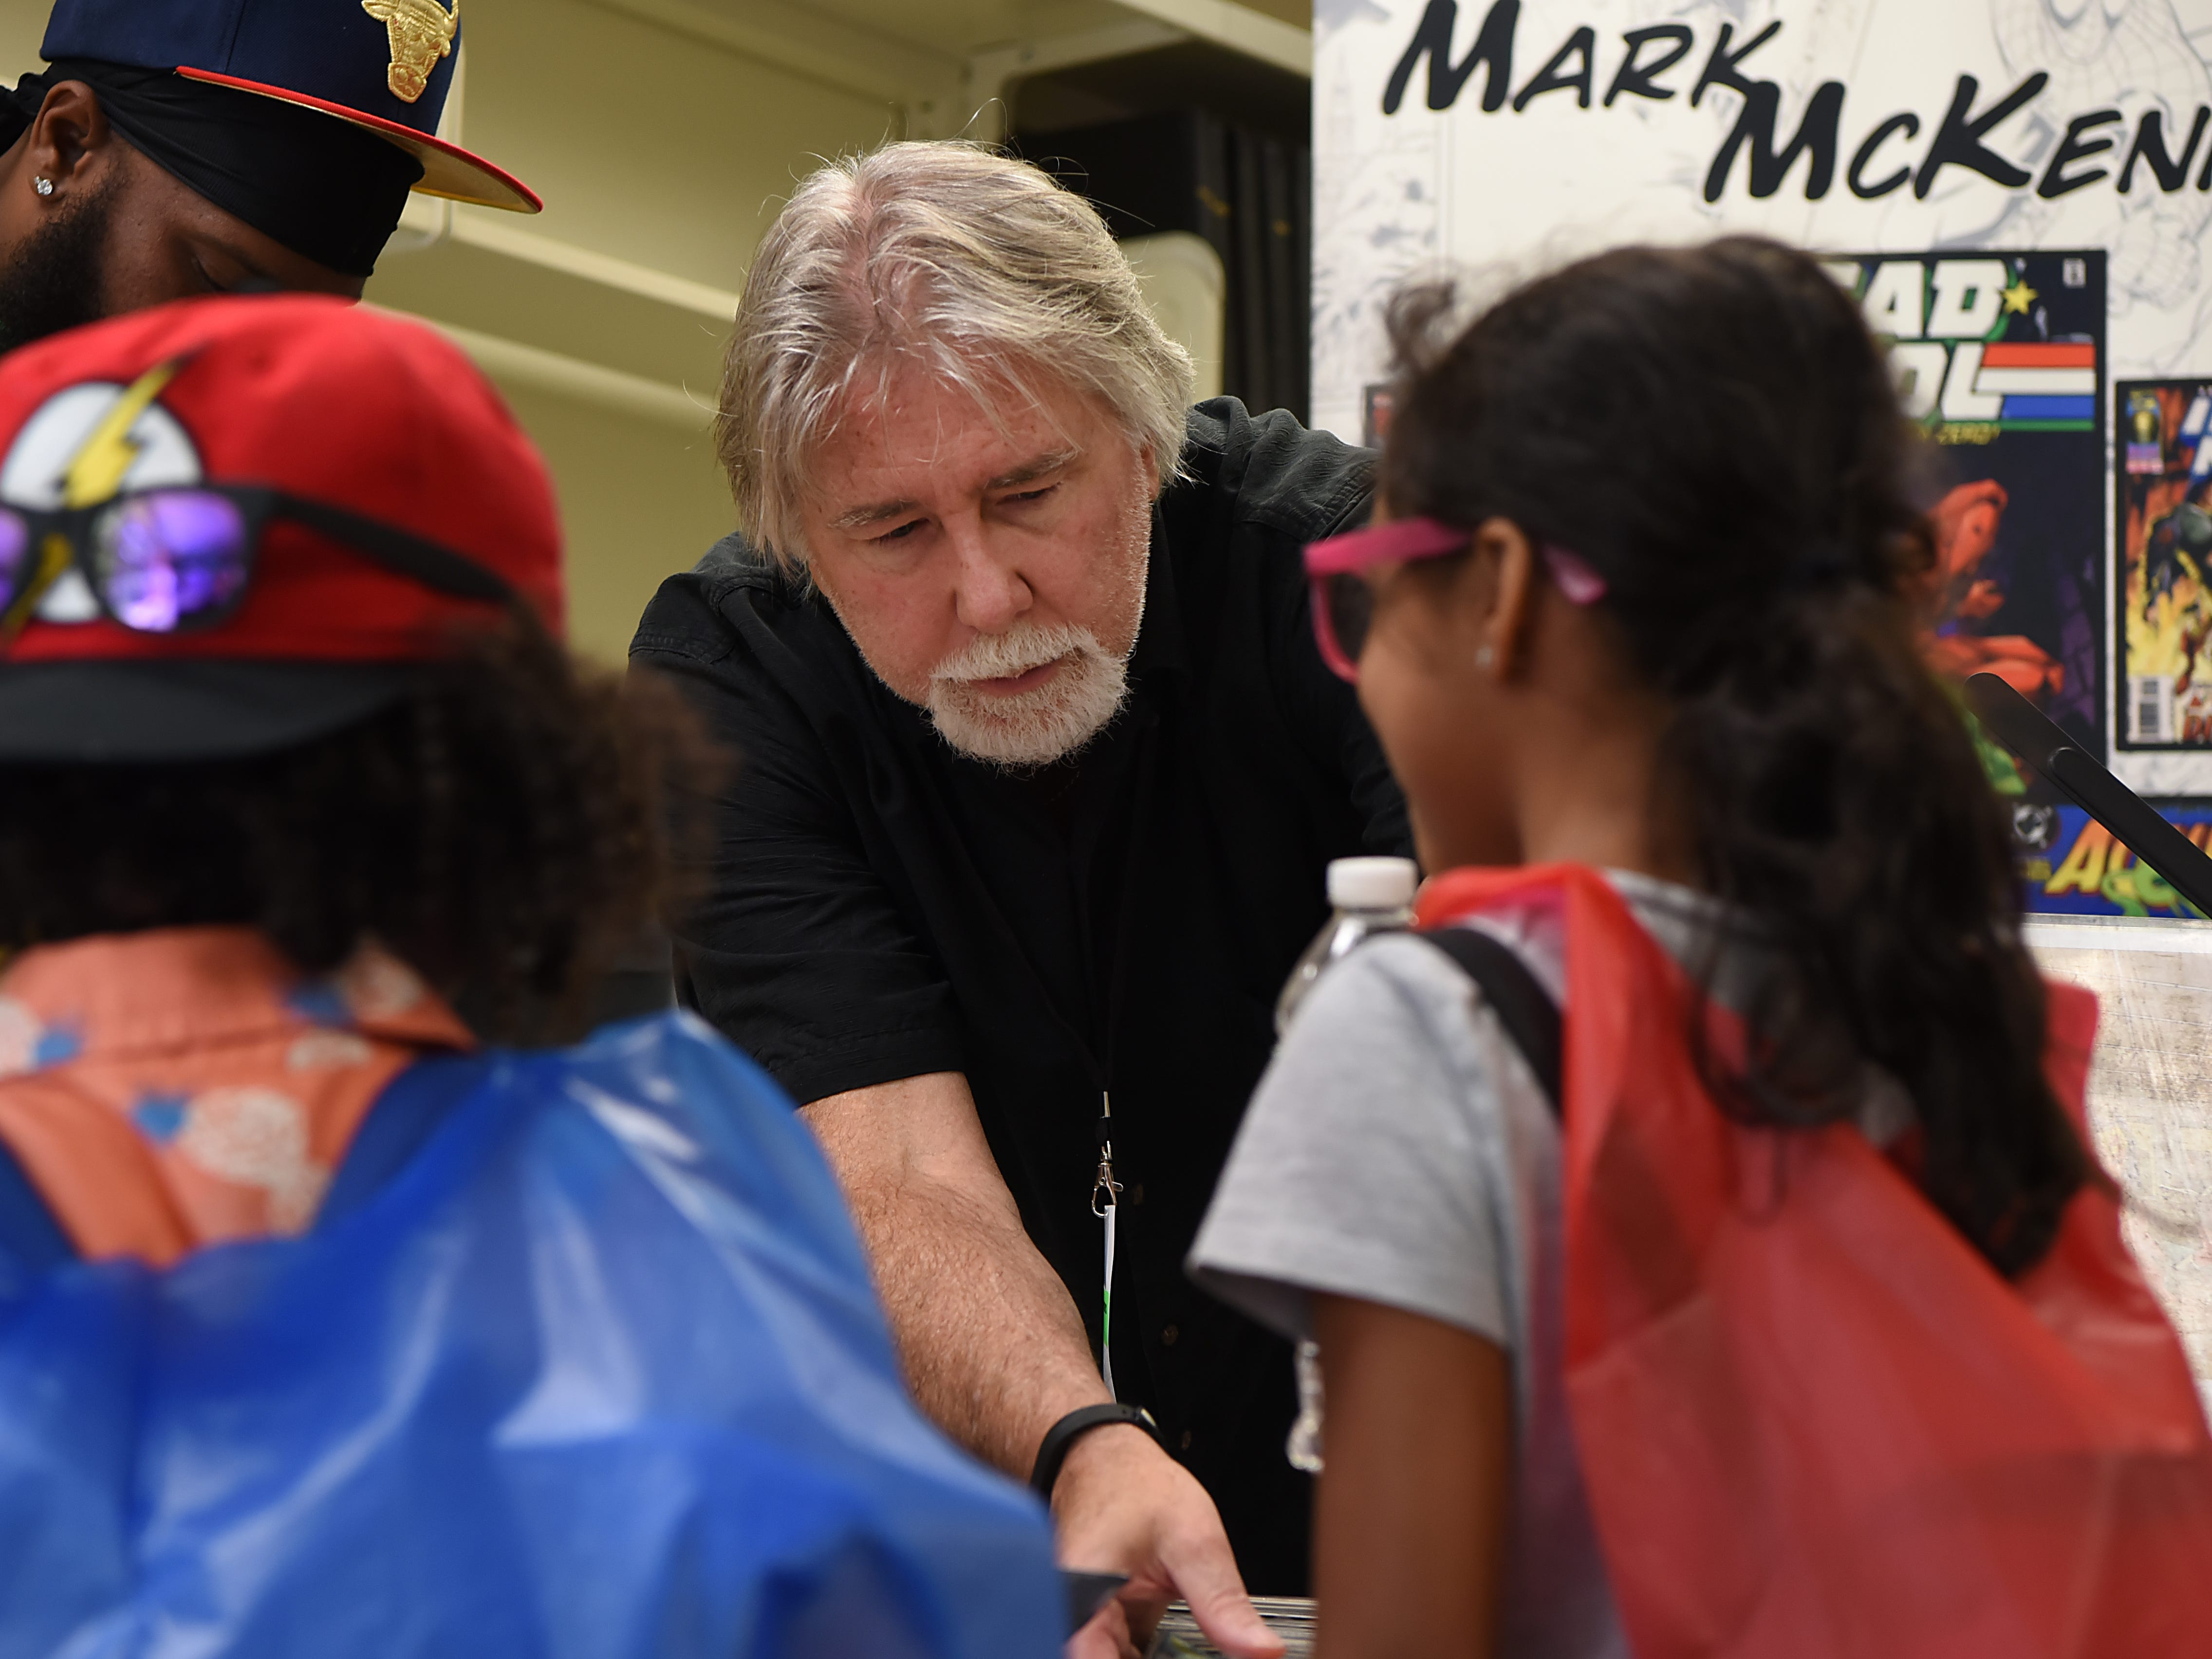 Mark McKenna, comic book artist, with some young fans during Comic-Con at Bergenfield Public Library in Bergenfield on Saturday August 25, 2018.